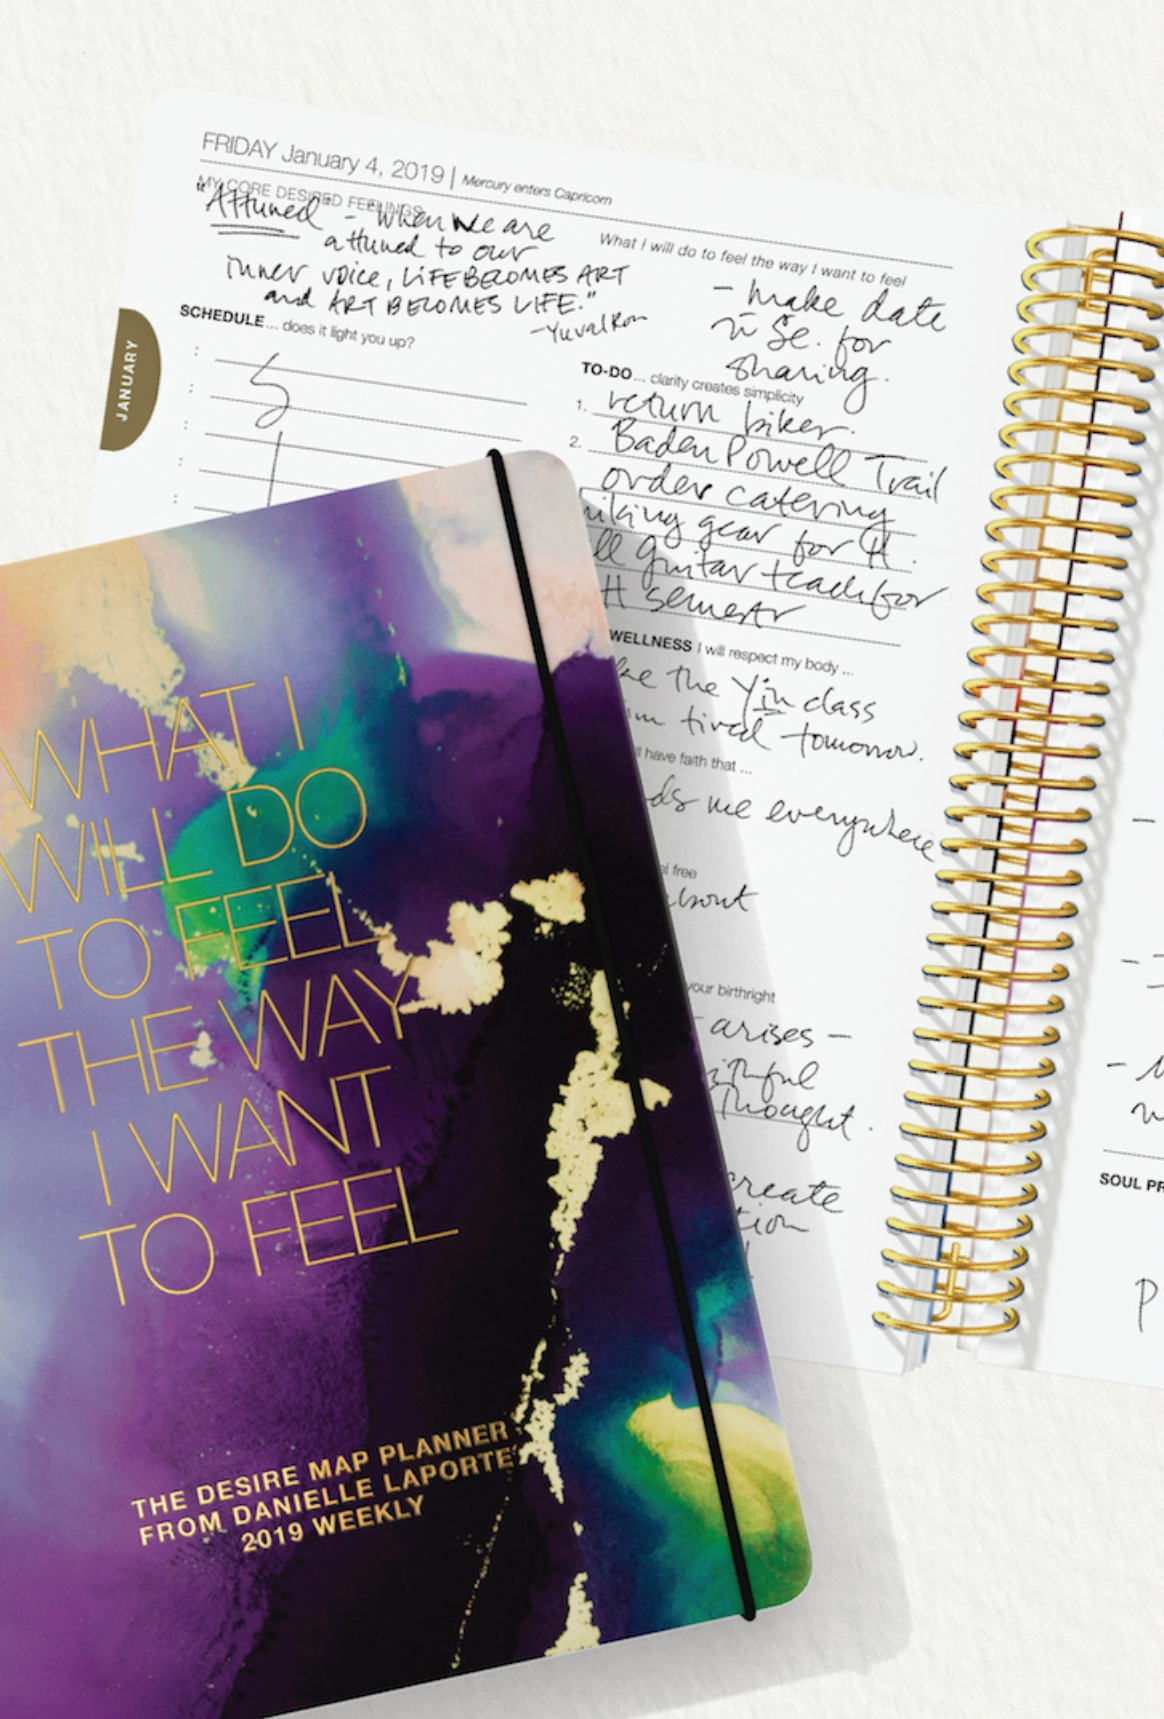 2019 Desire Map Planner Review & Giveaway - Can Cook, Will ... on depression map, tapestry map, new orleans streetcar line map, dream map, anger map, new orleans area zip code map, death map, mozambique map, war map, quality map, drive map, destiny map, vision map, sandman map, the iliad character map, happiness map, grief map, fire map, love map, abbey road map,